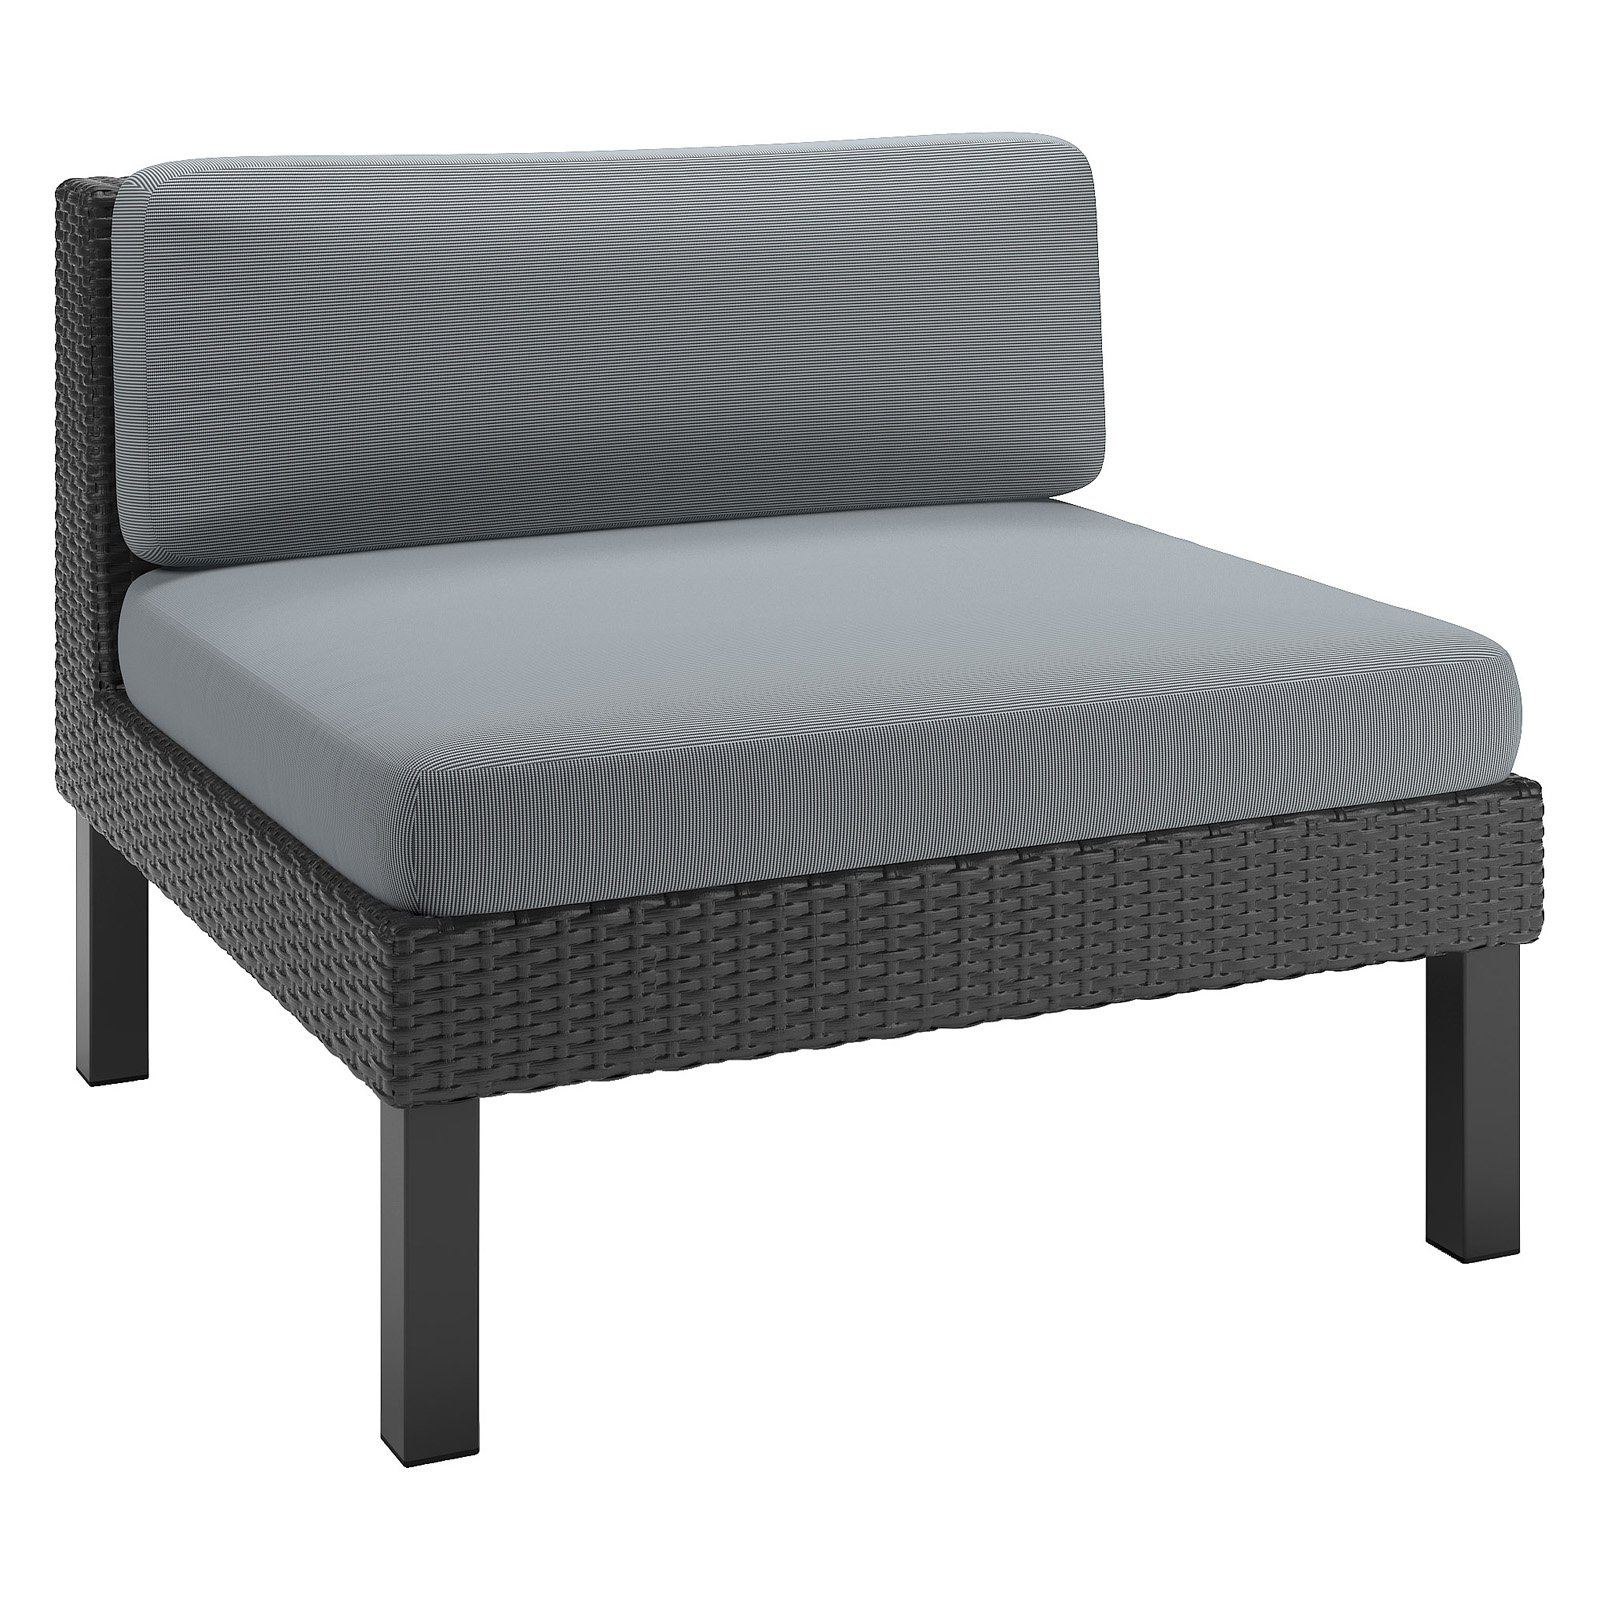 CorLiving Oakland Patio Middle Seat, Textured Black Weave